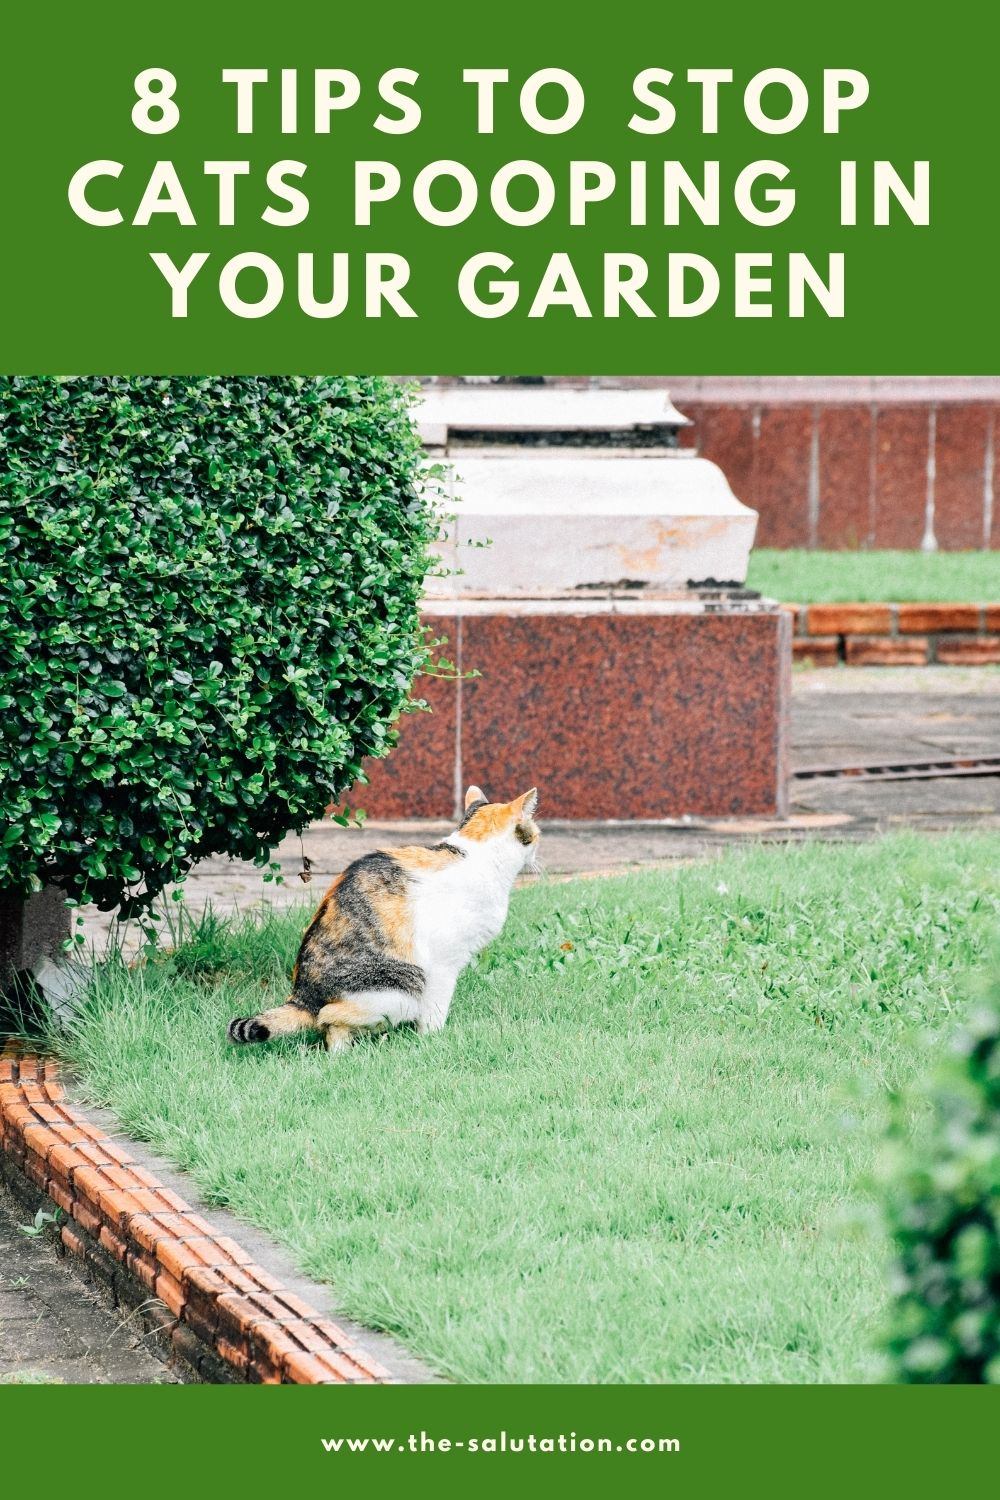 8 Tips to Stop Cats Pooping In Your Garden 1